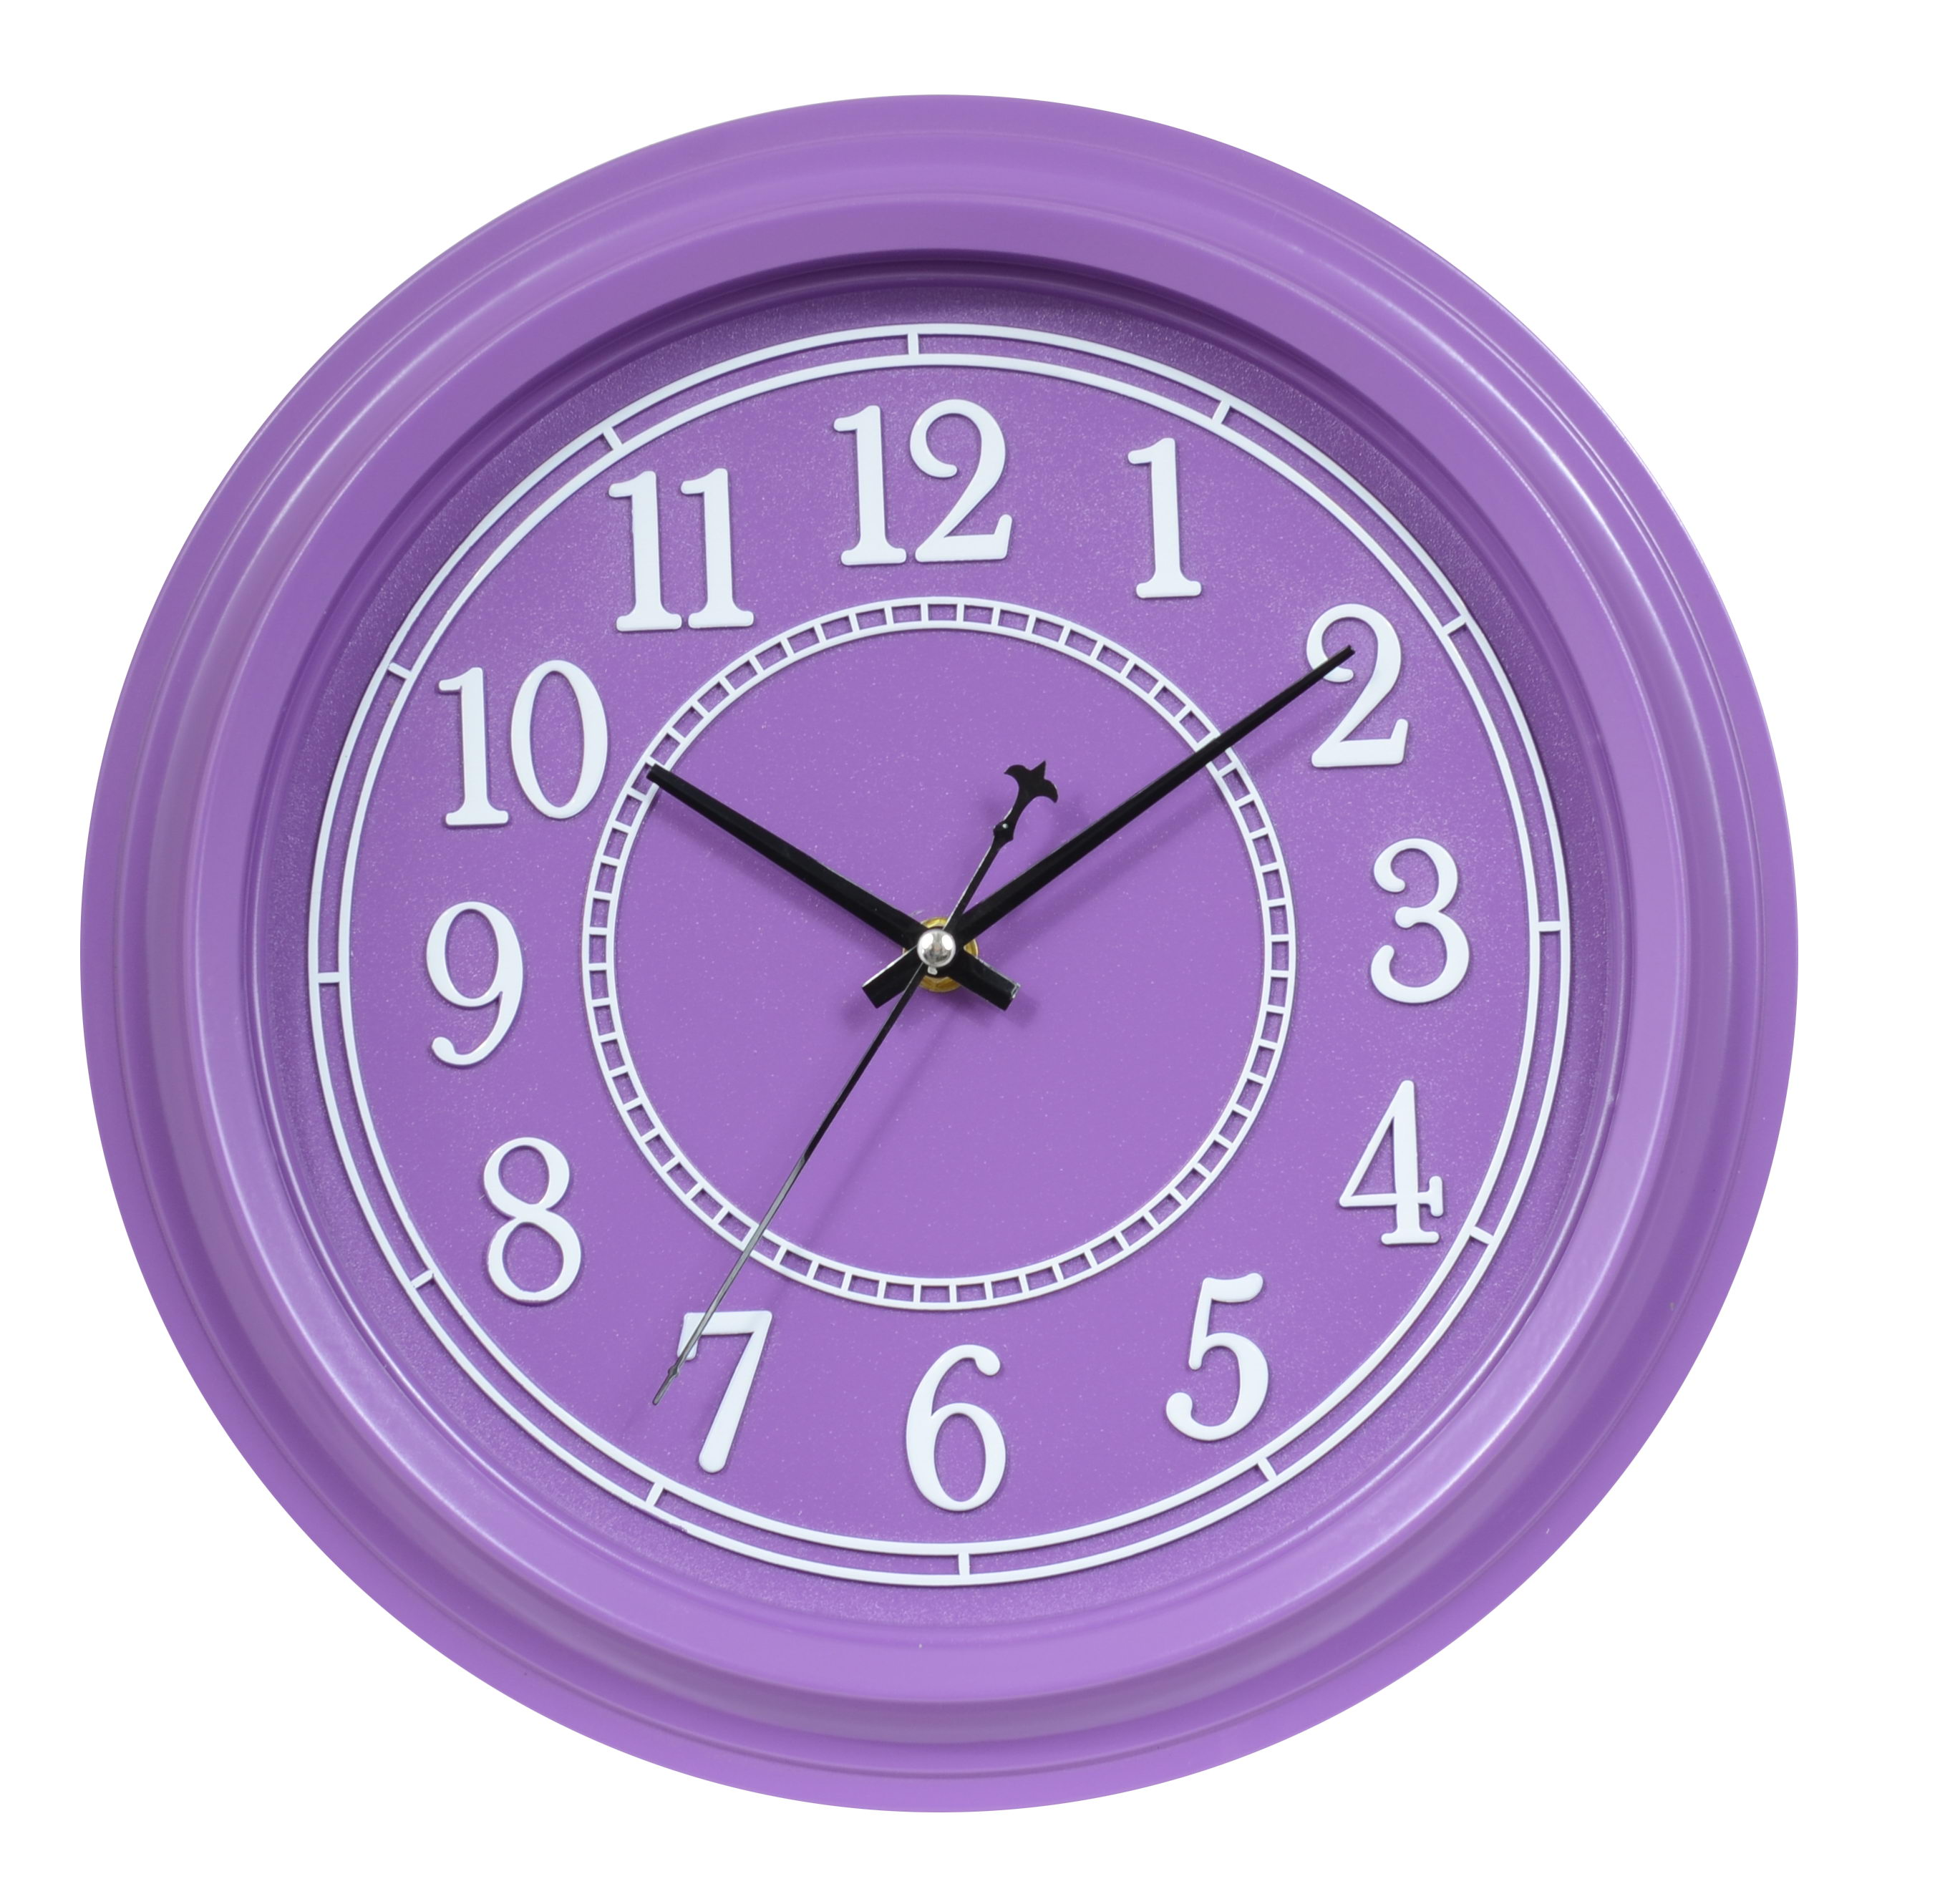 high quality antique wall clock with different color